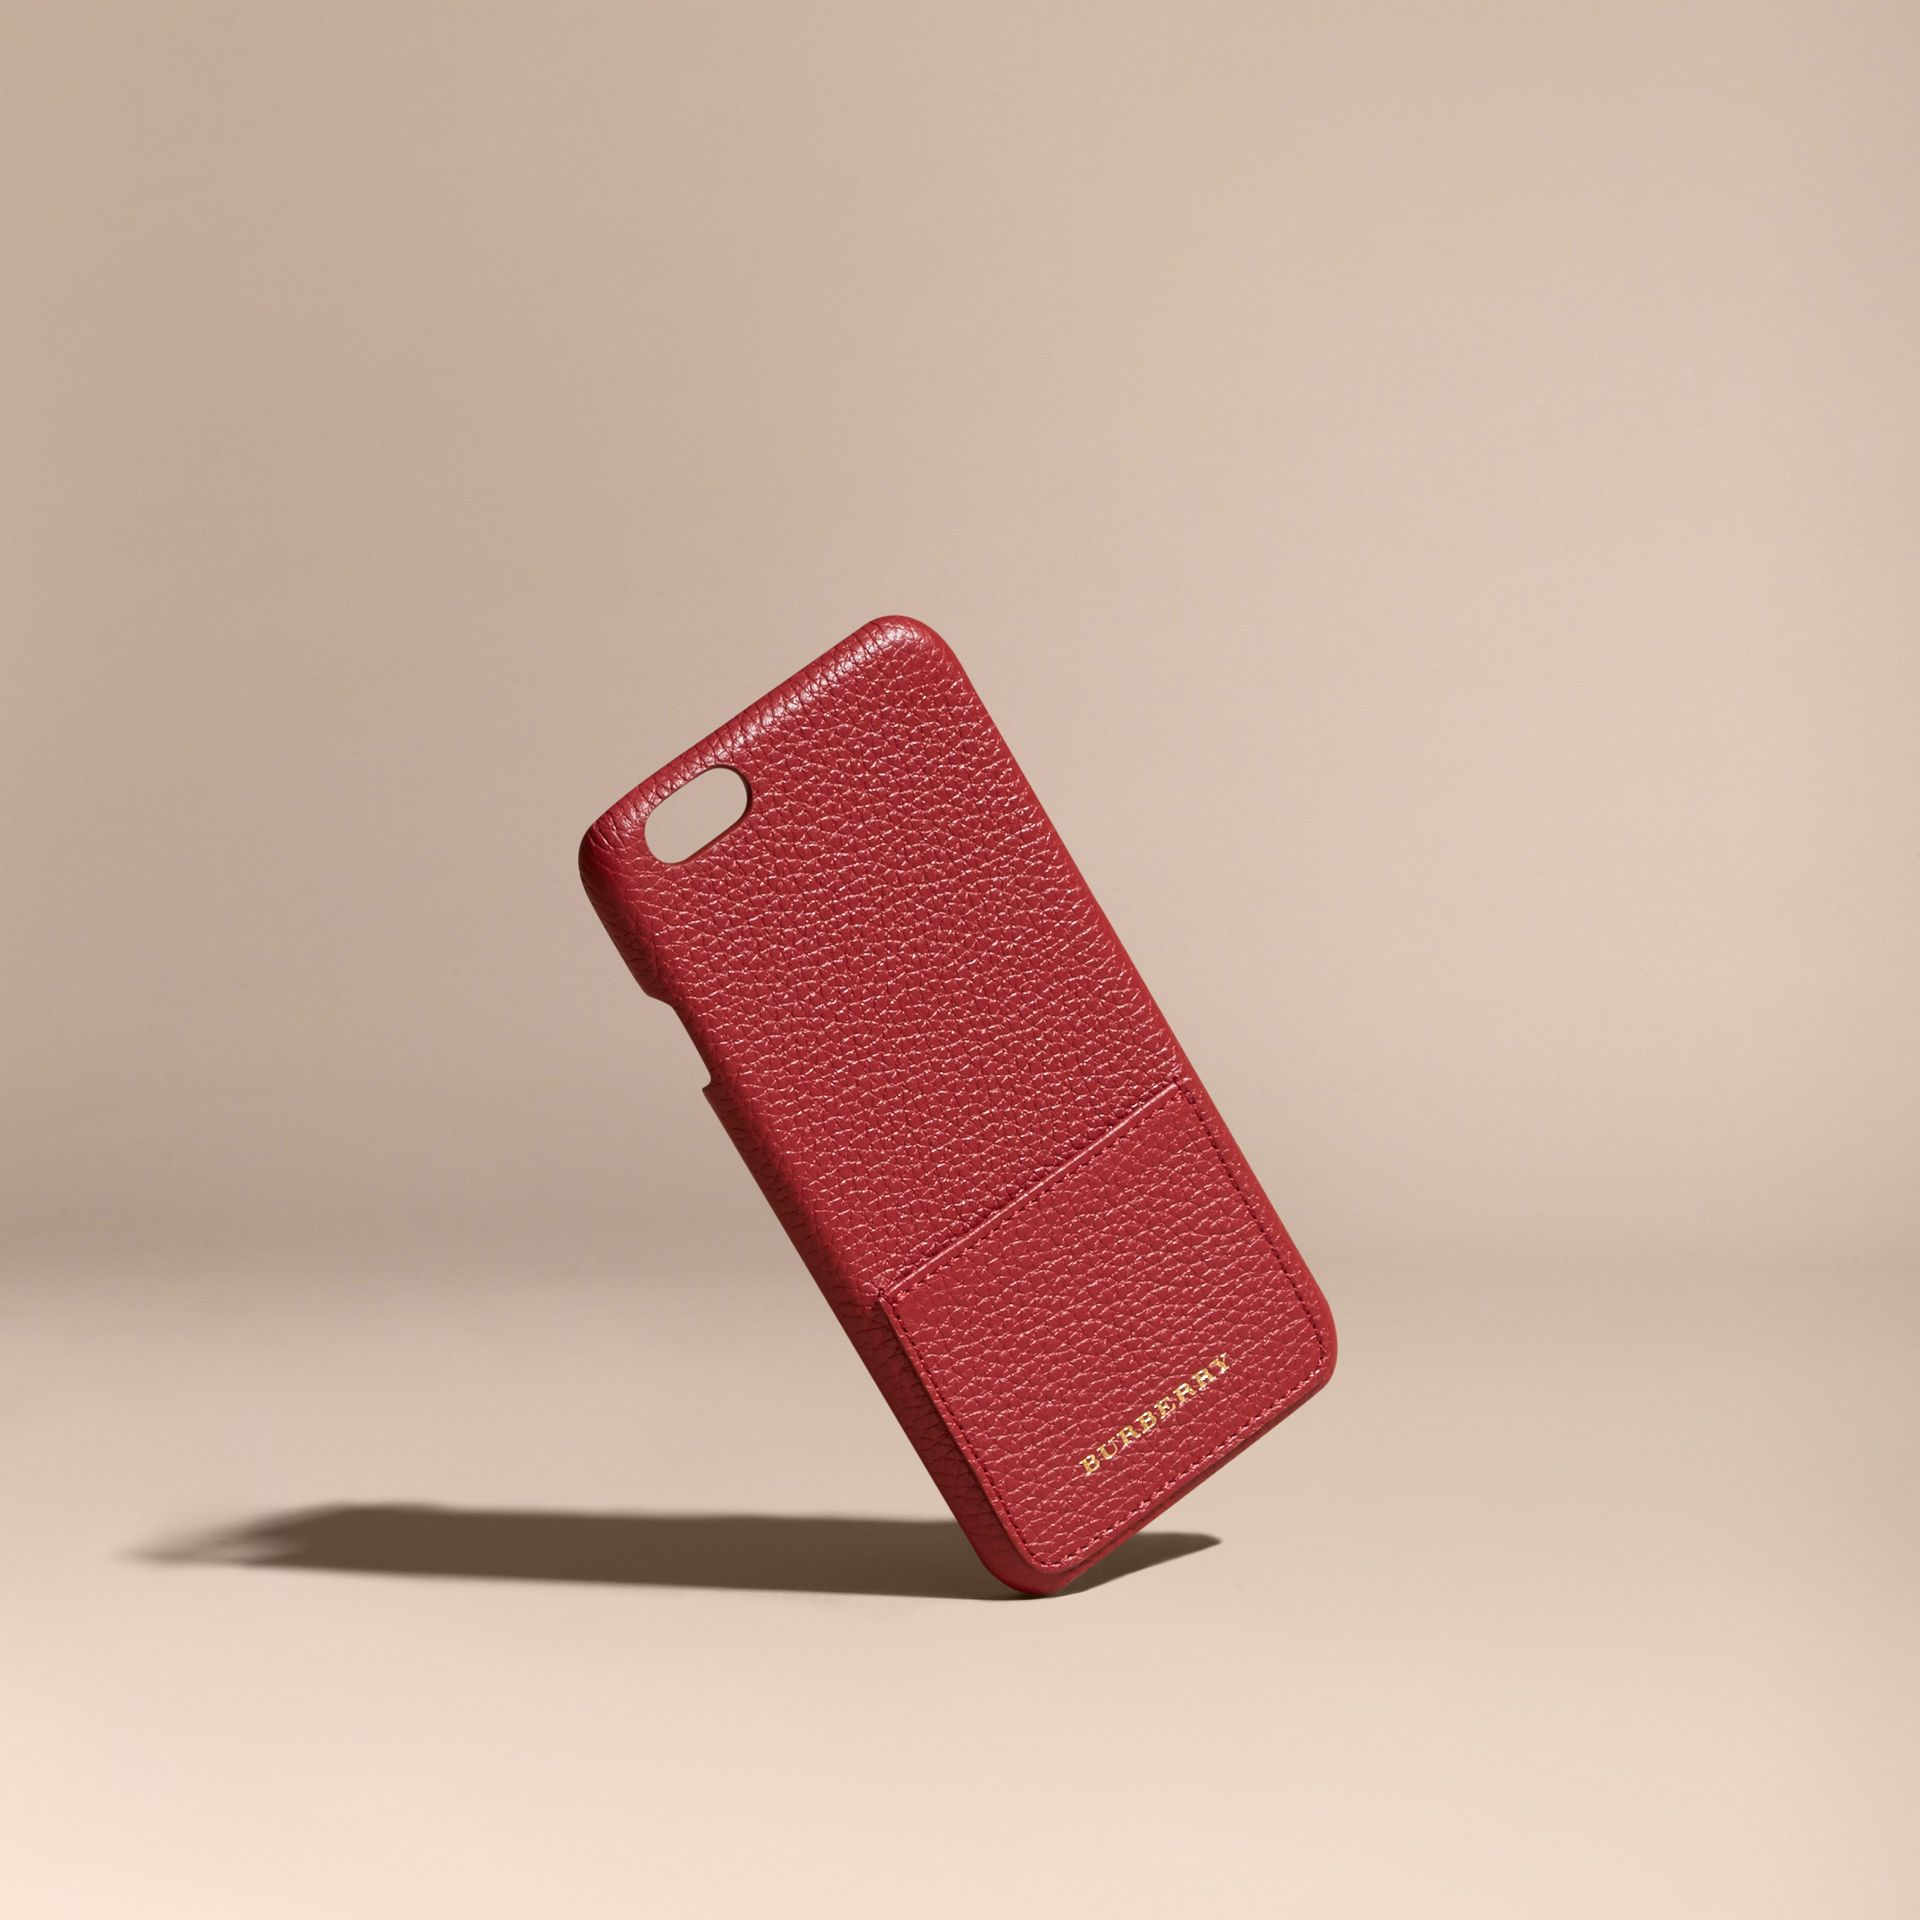 Étui pour iPhone 6 en cuir grené (Rouge Parade) | Burberry - photo de la galerie 1